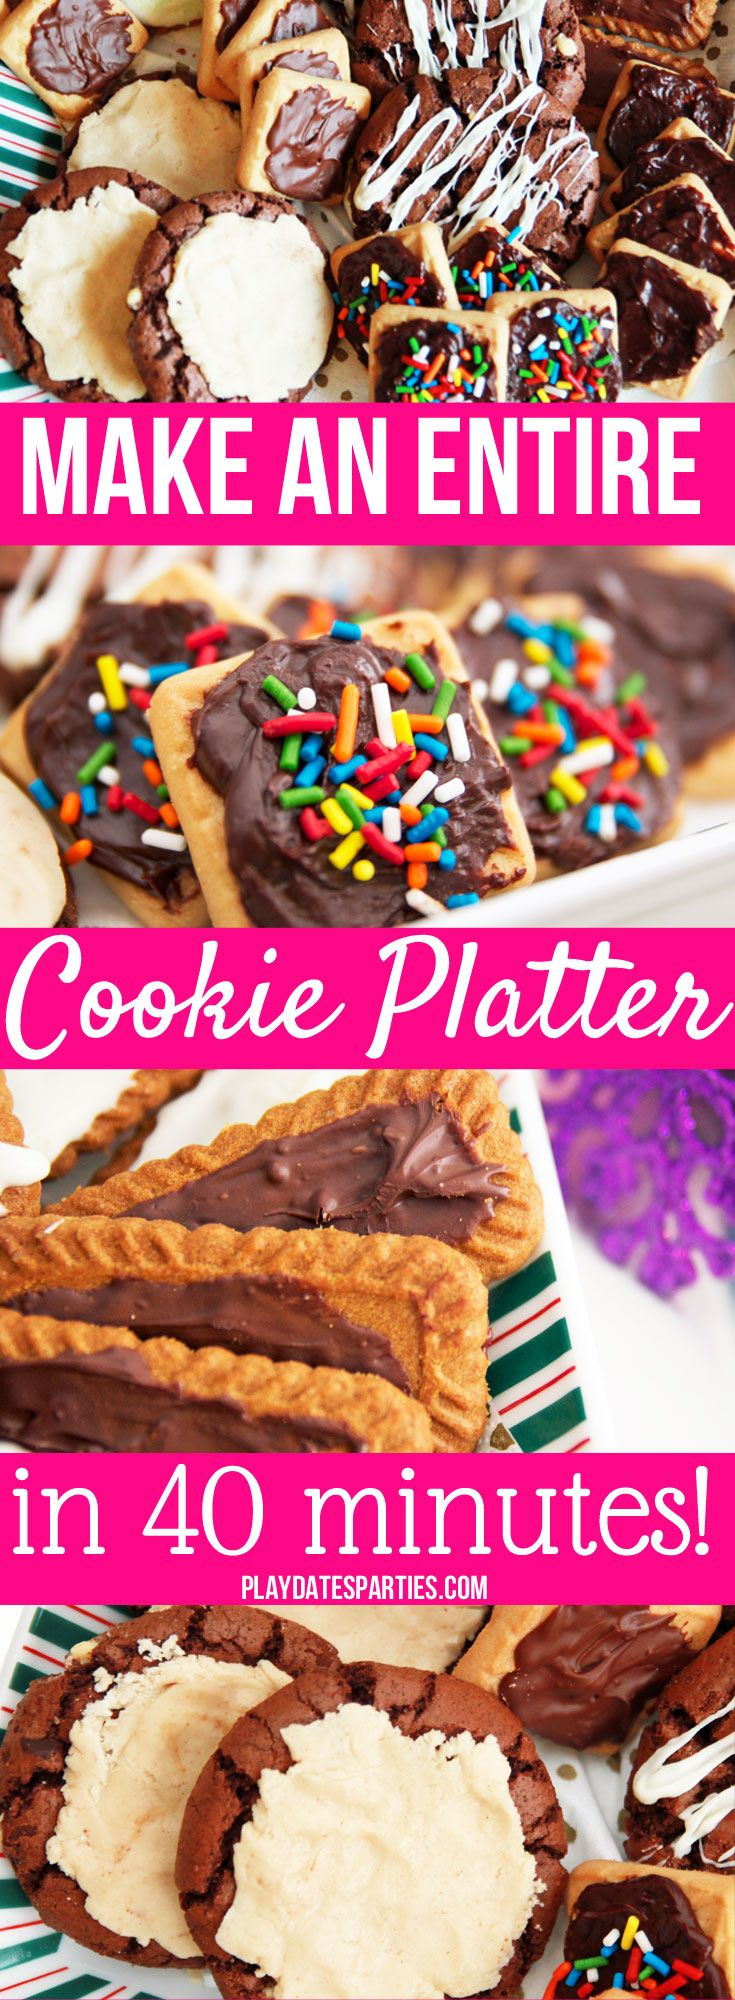 Some days you don't have time to make a whole platter of homemade cookies. Instead, find out the best cookie platter tips to turn store-bought cookies into awesome 'homemade' treats...in only 40 minutes! https://playdatesparties.com/12-days-of-christmas-cookies-cheating/